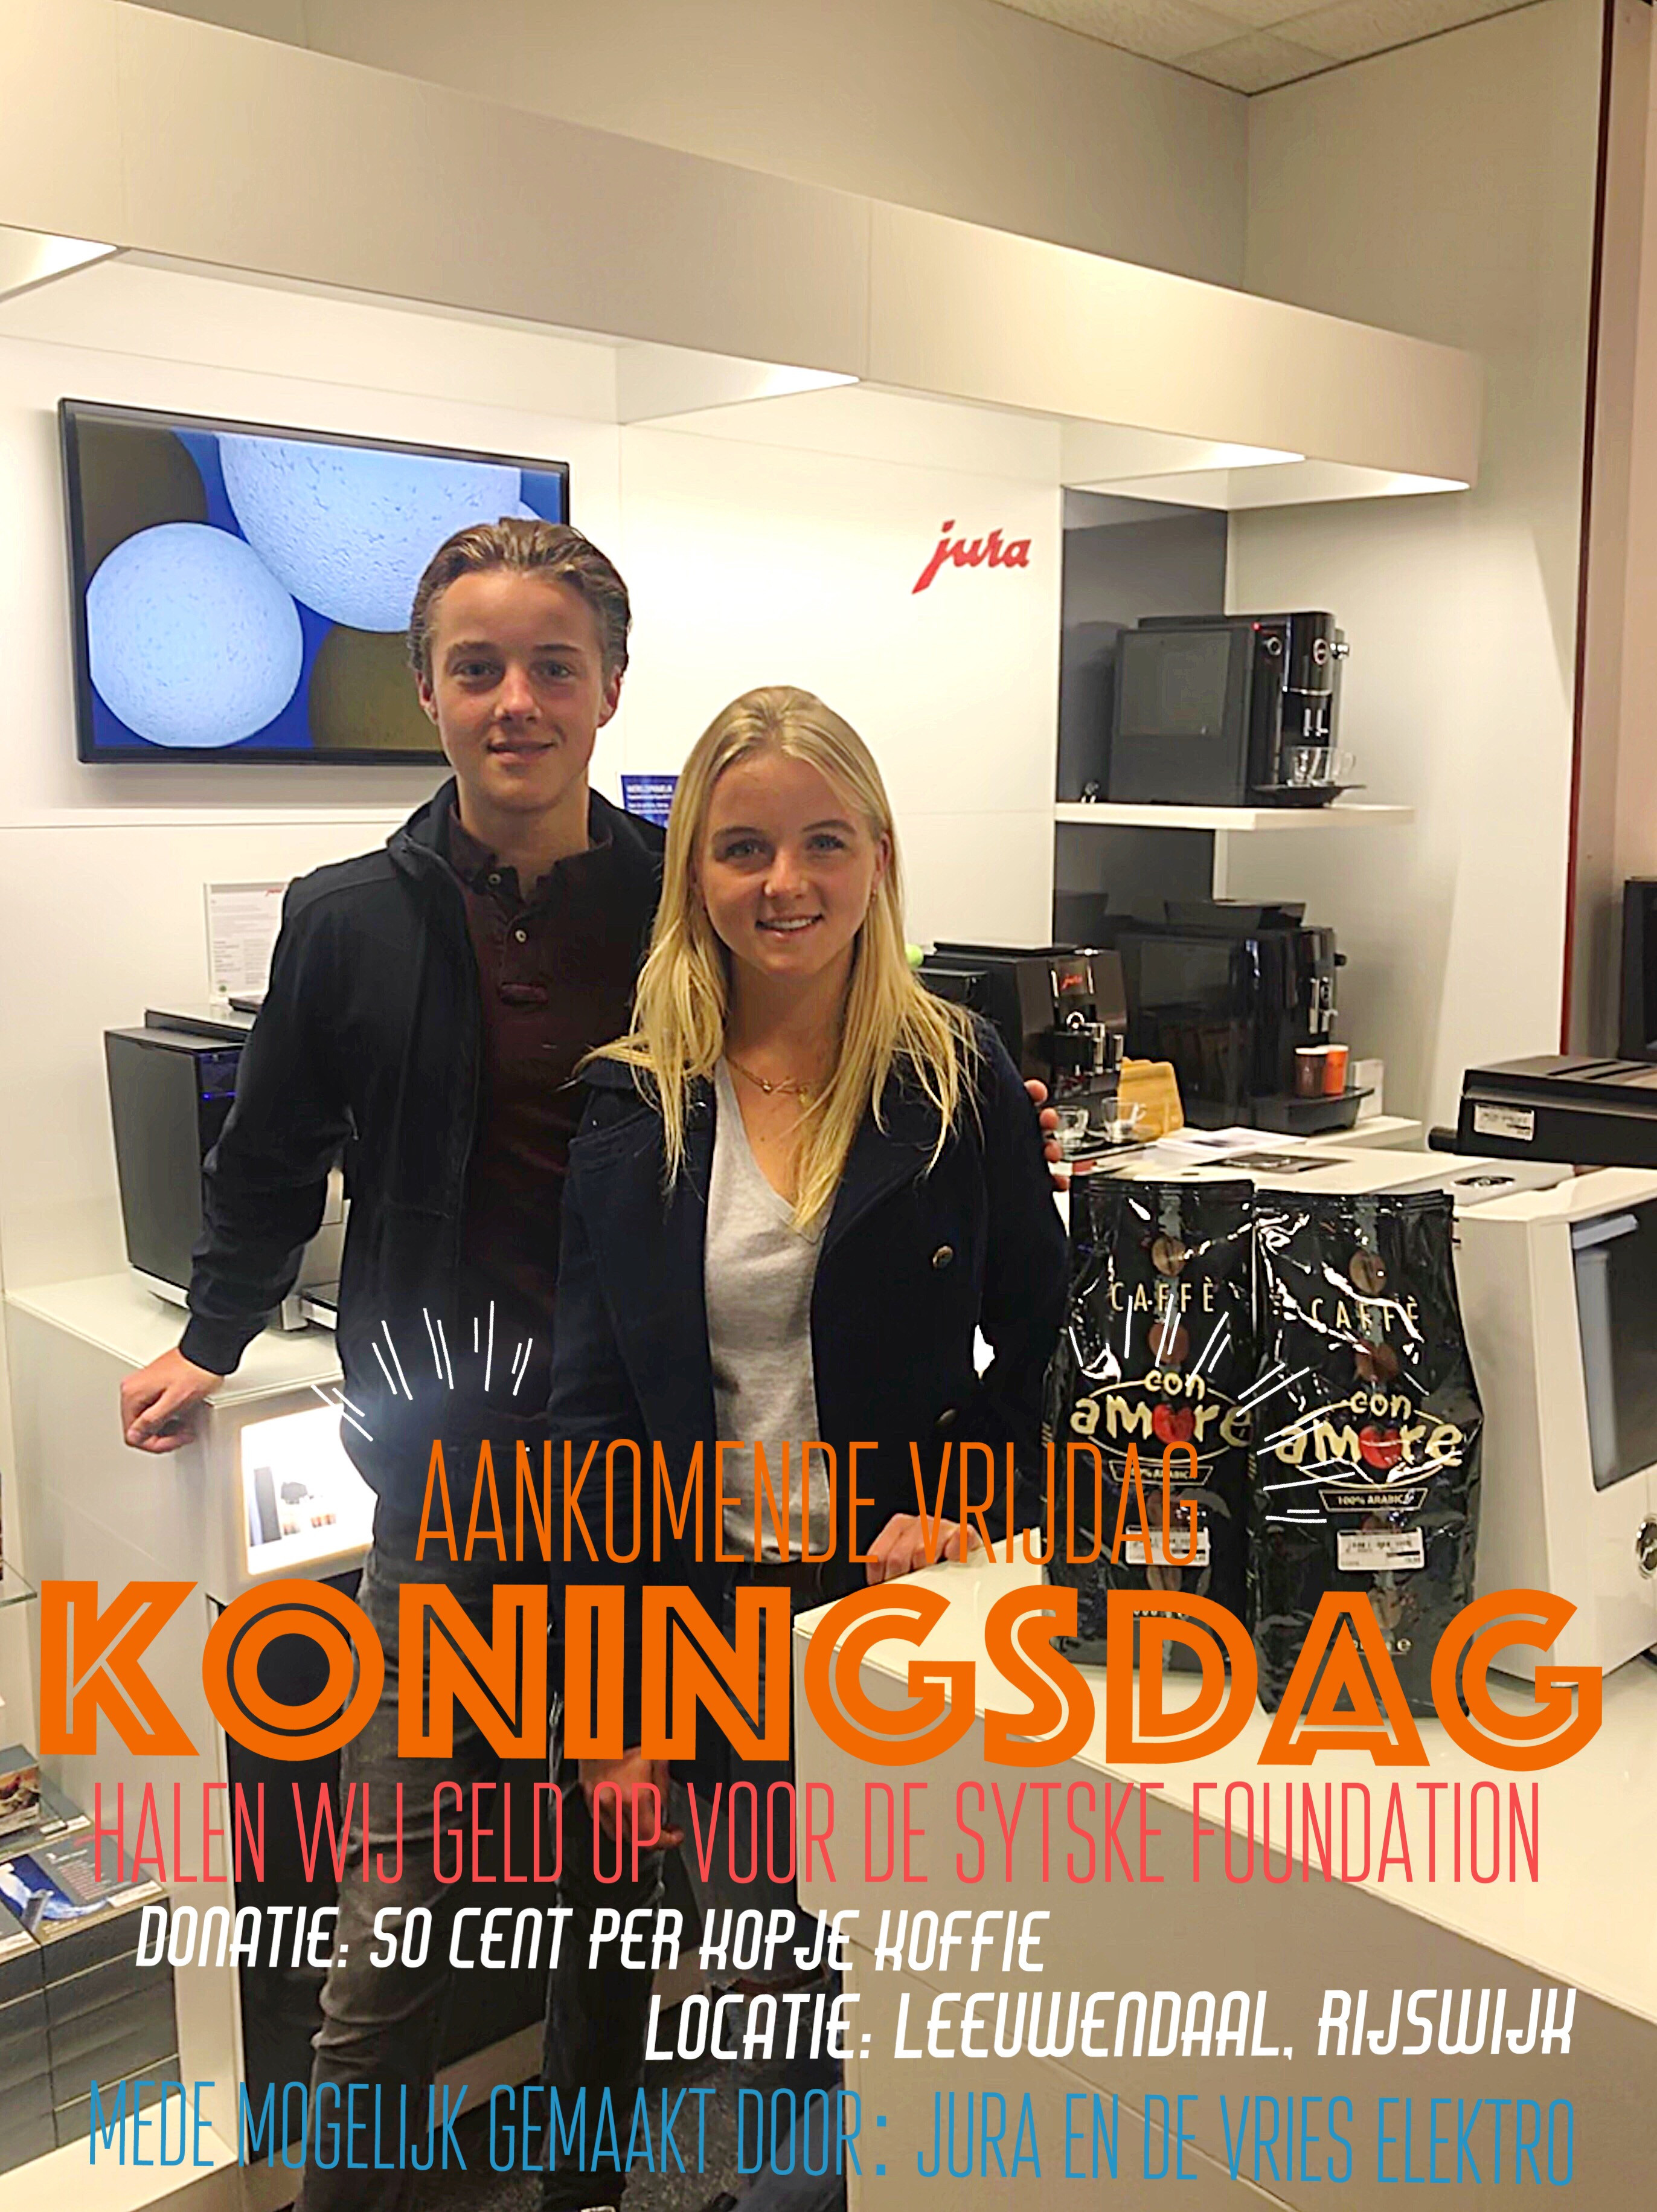 Serving Coffee on 'Koningsdag' for Sytske and fellow sufferers: Proceeds: € 700! Bas and Sacha Thank You!